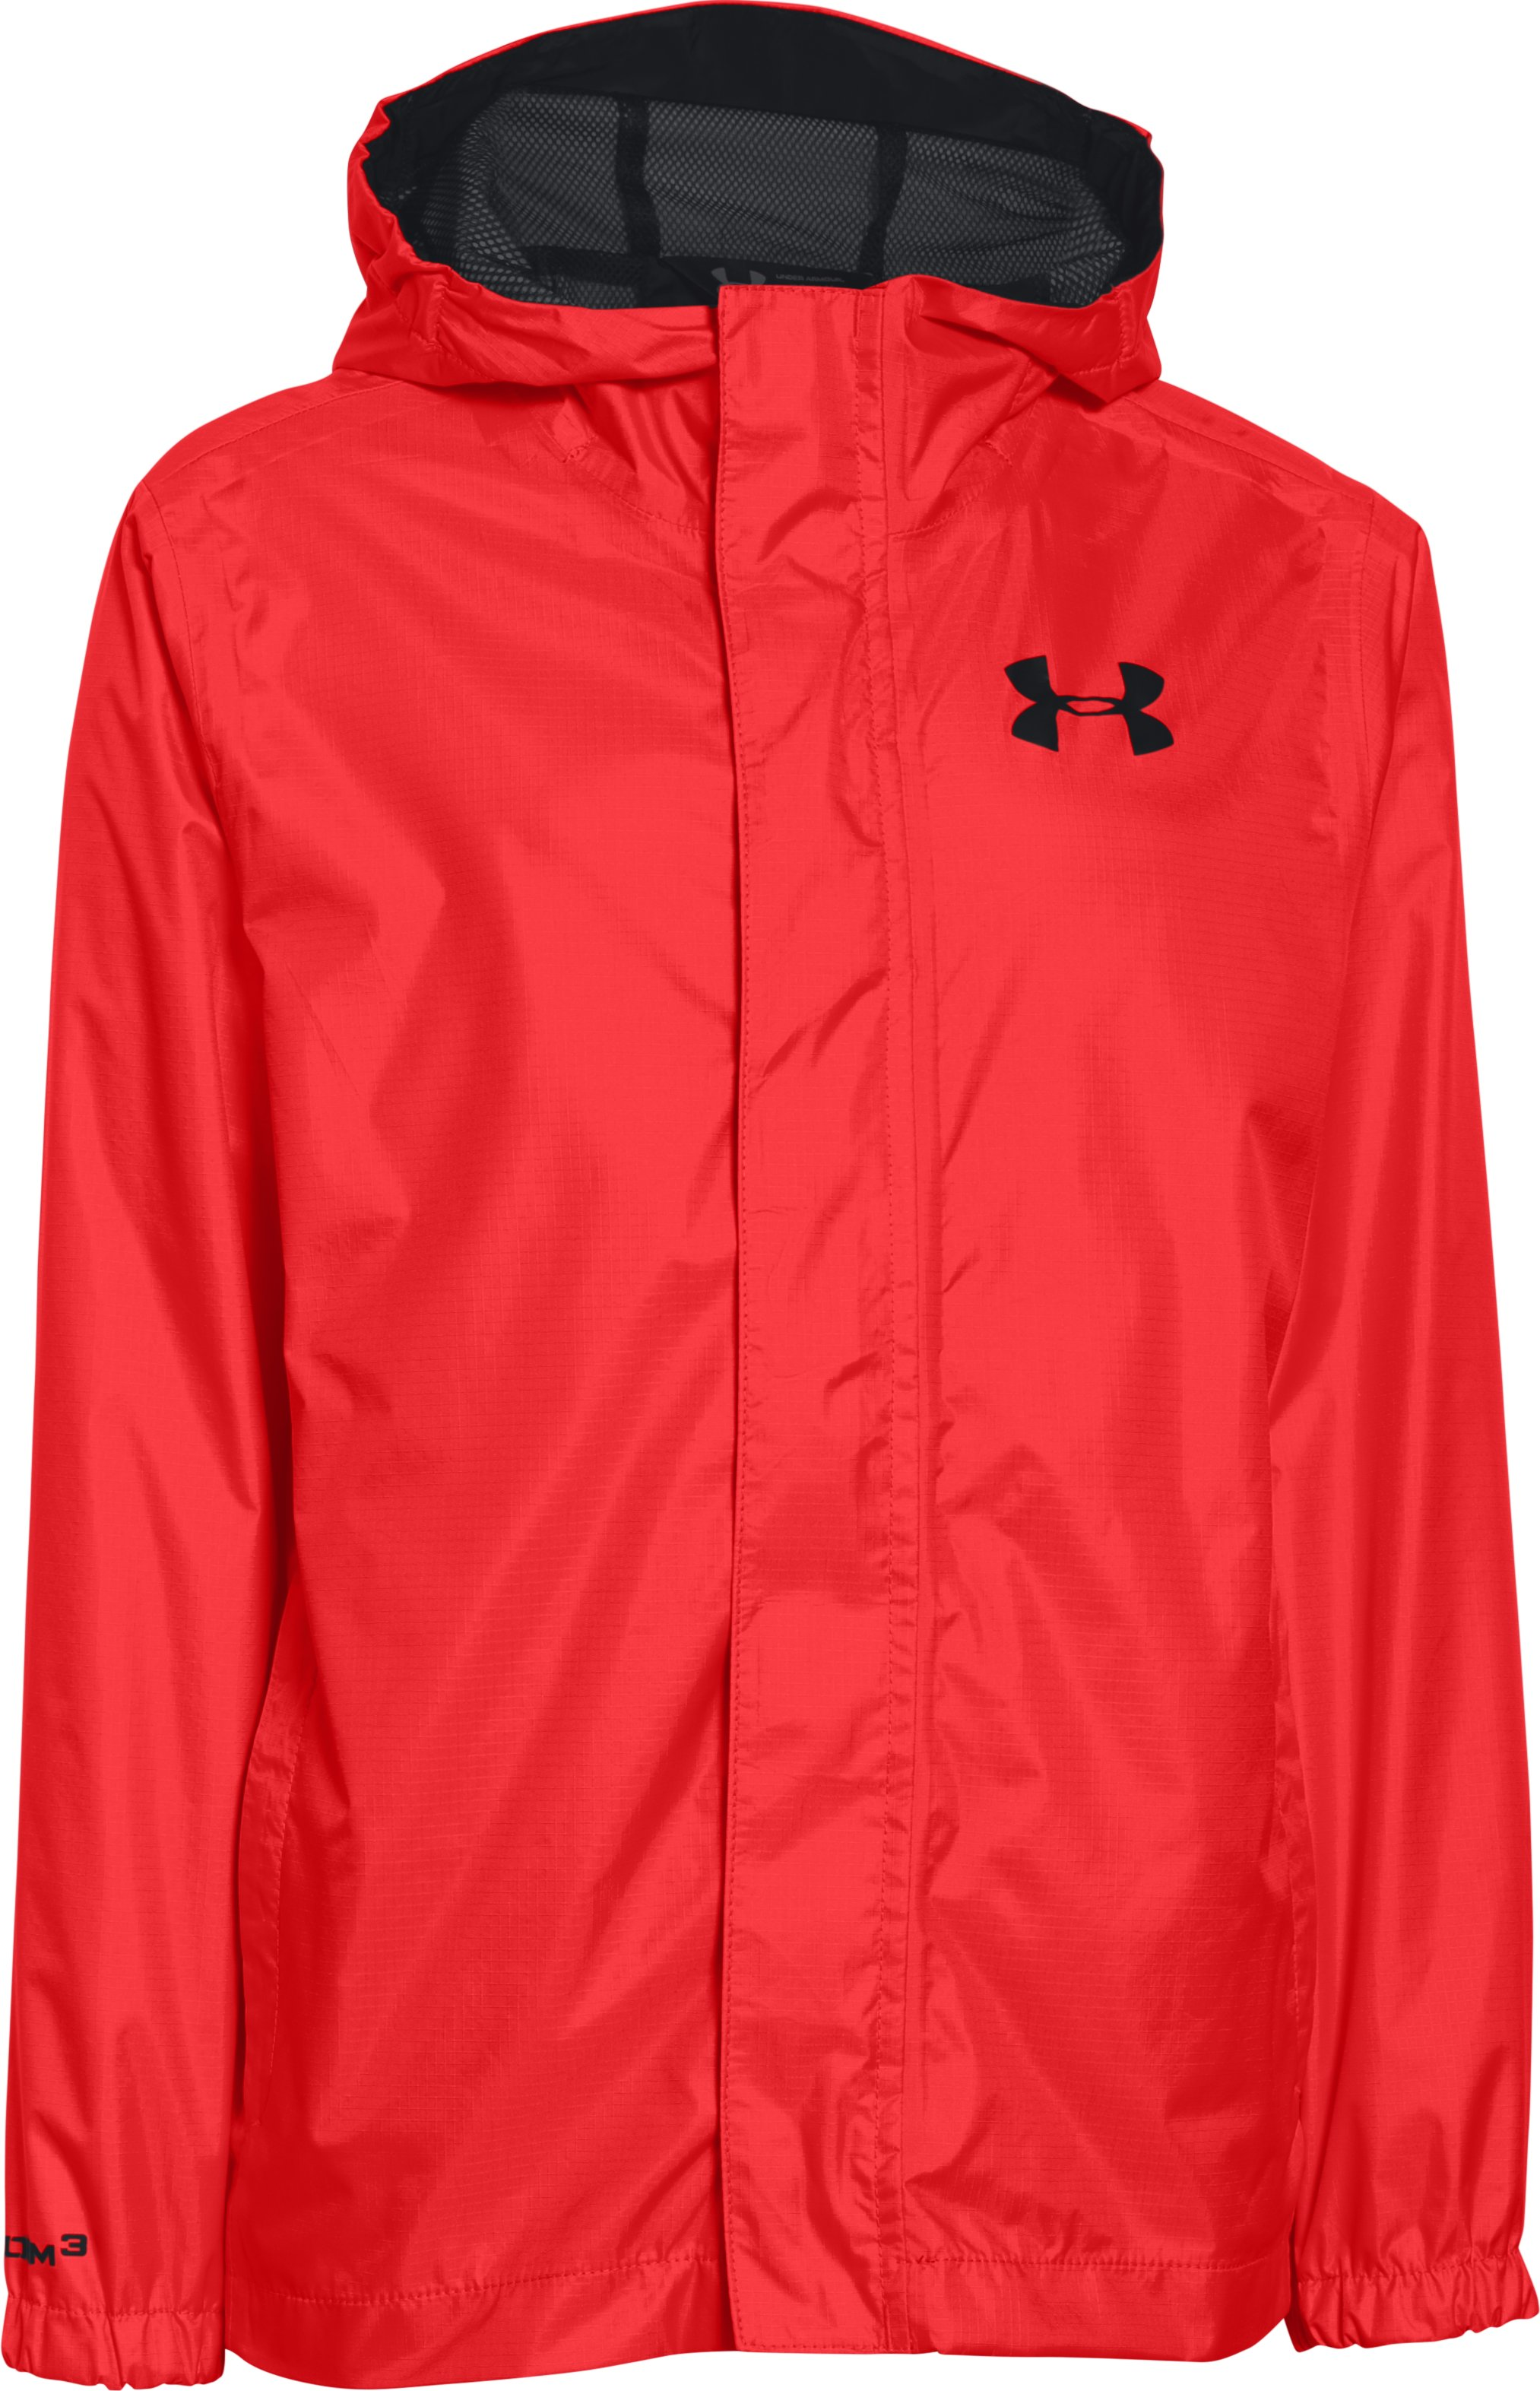 Boys' UA Clean Up Piped Baseball Jacket, ROCKET RED, undefined